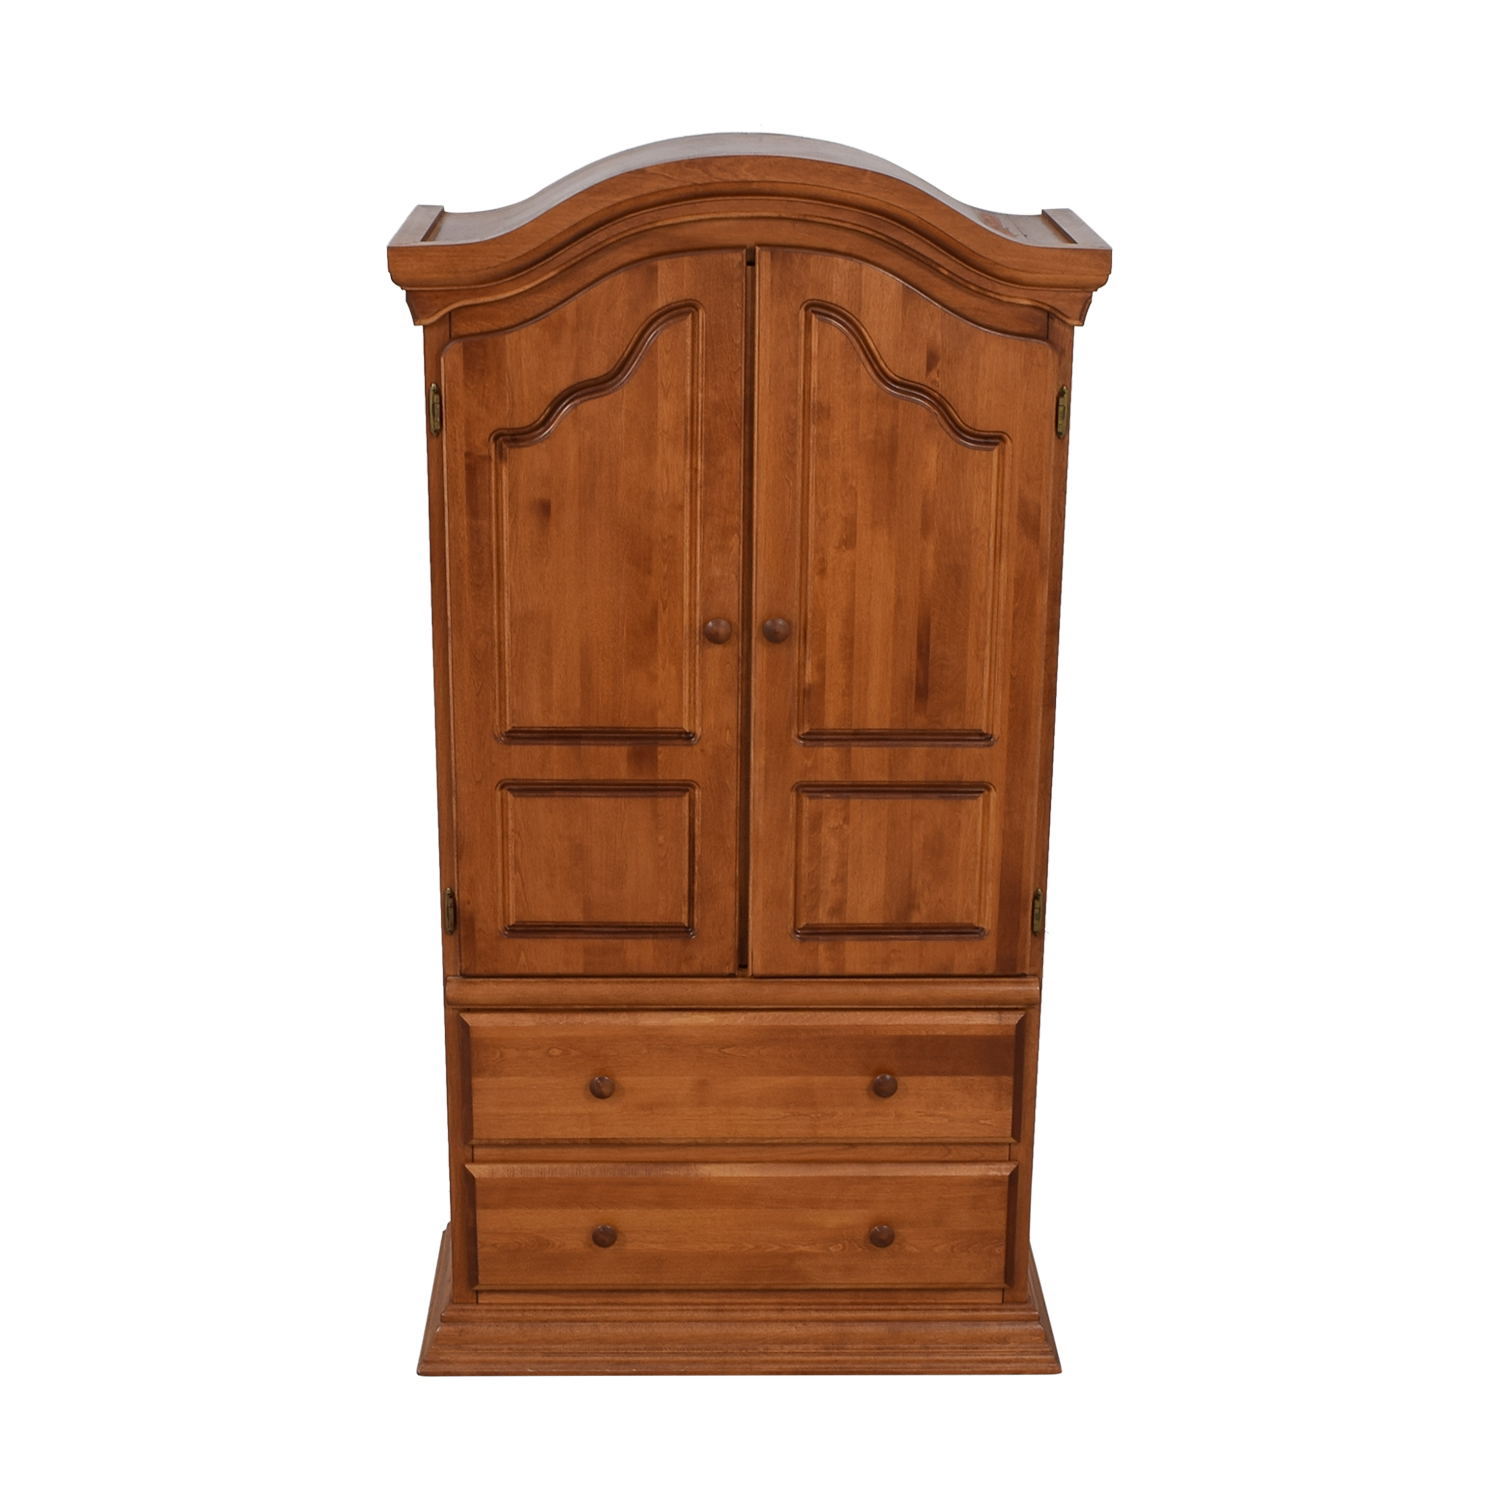 Bellini Bellini Two-Drawer Wood Clothing Armoire used